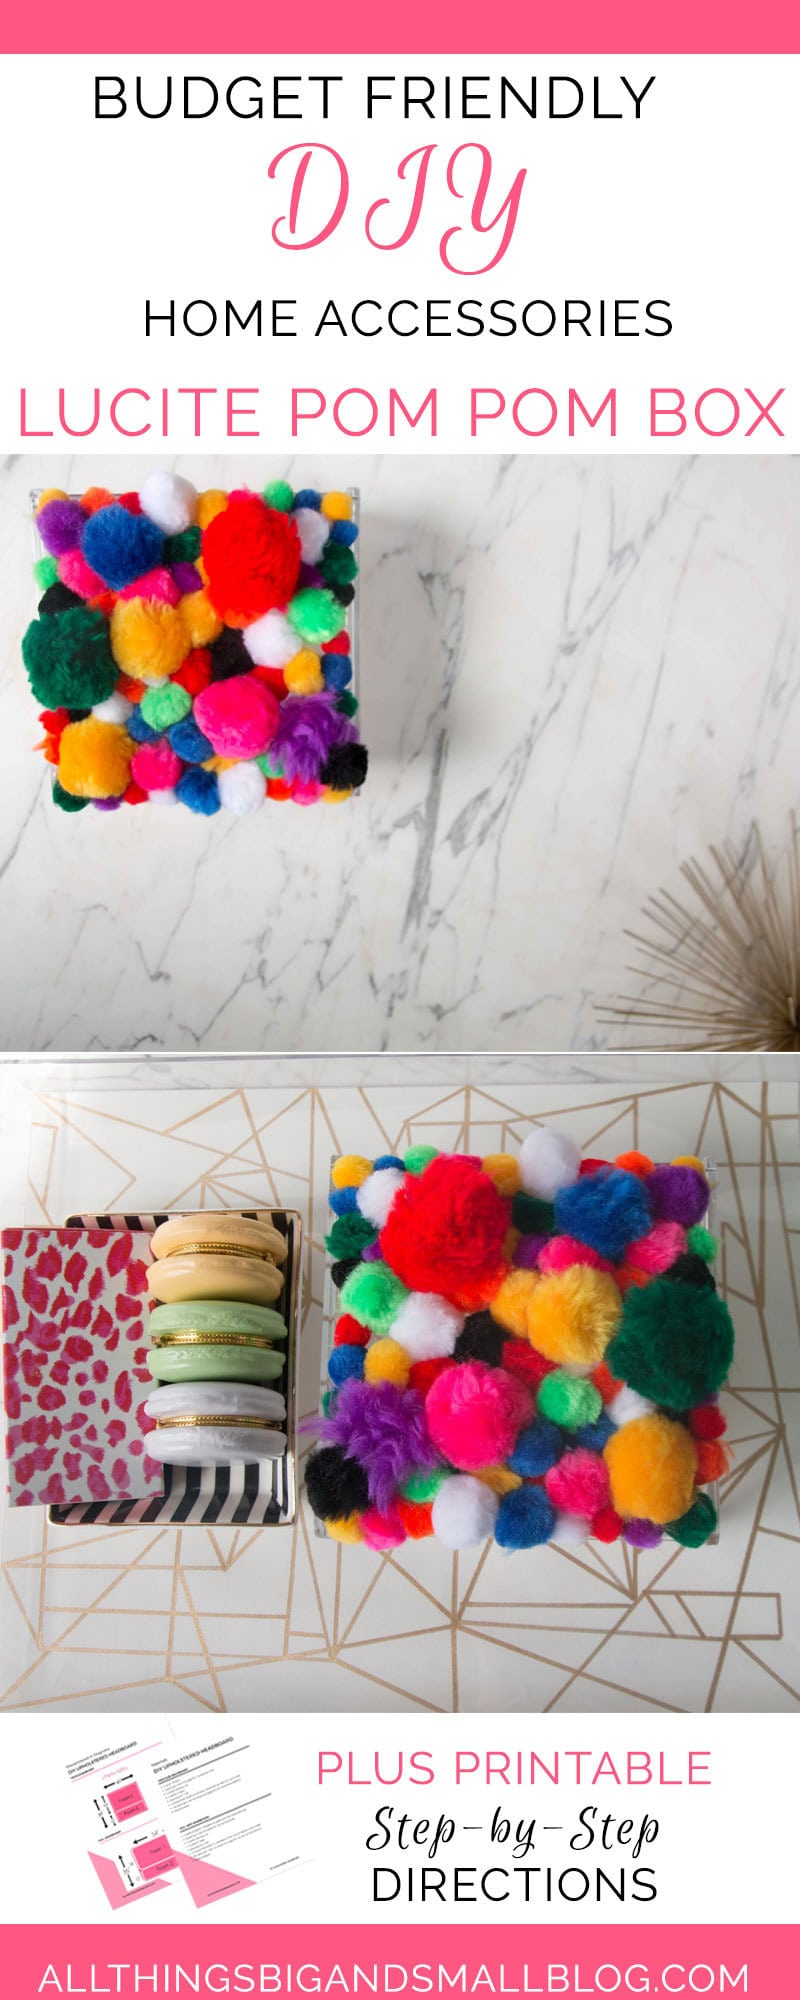 DIY Home Decor | DIY Home accessories | lucite box | pom pom lucite box | ALL THINGS BIG AND SMALL